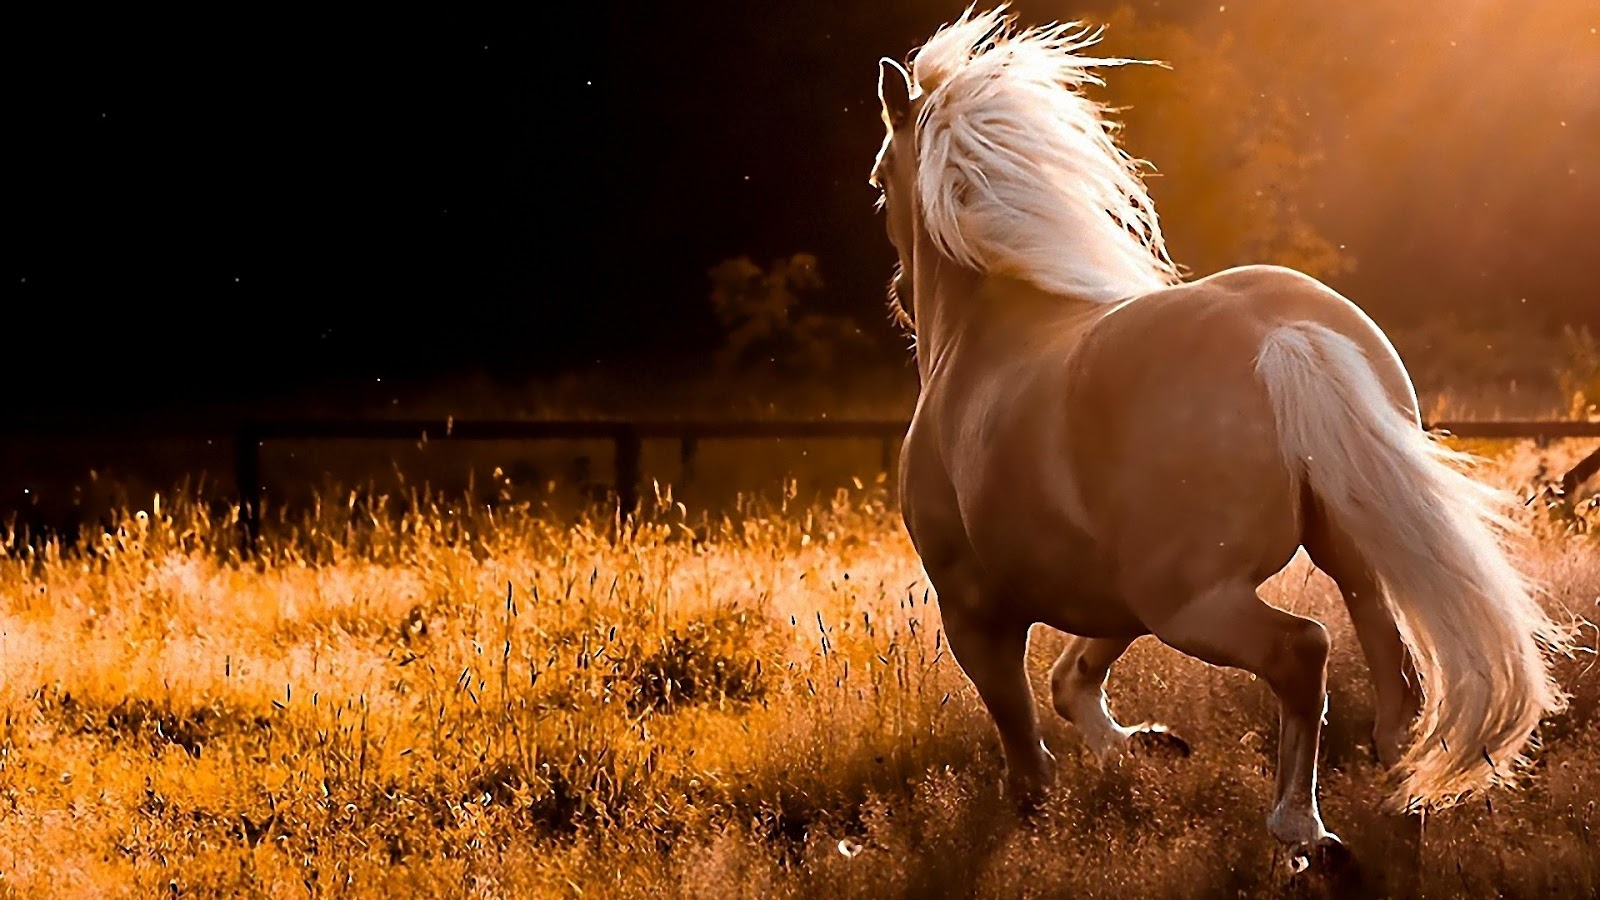 Amazing   Wallpaper Horse Nature - Beautiful+Horse+Hd+Wallpapers+2013_6  Collection_46378.jpg